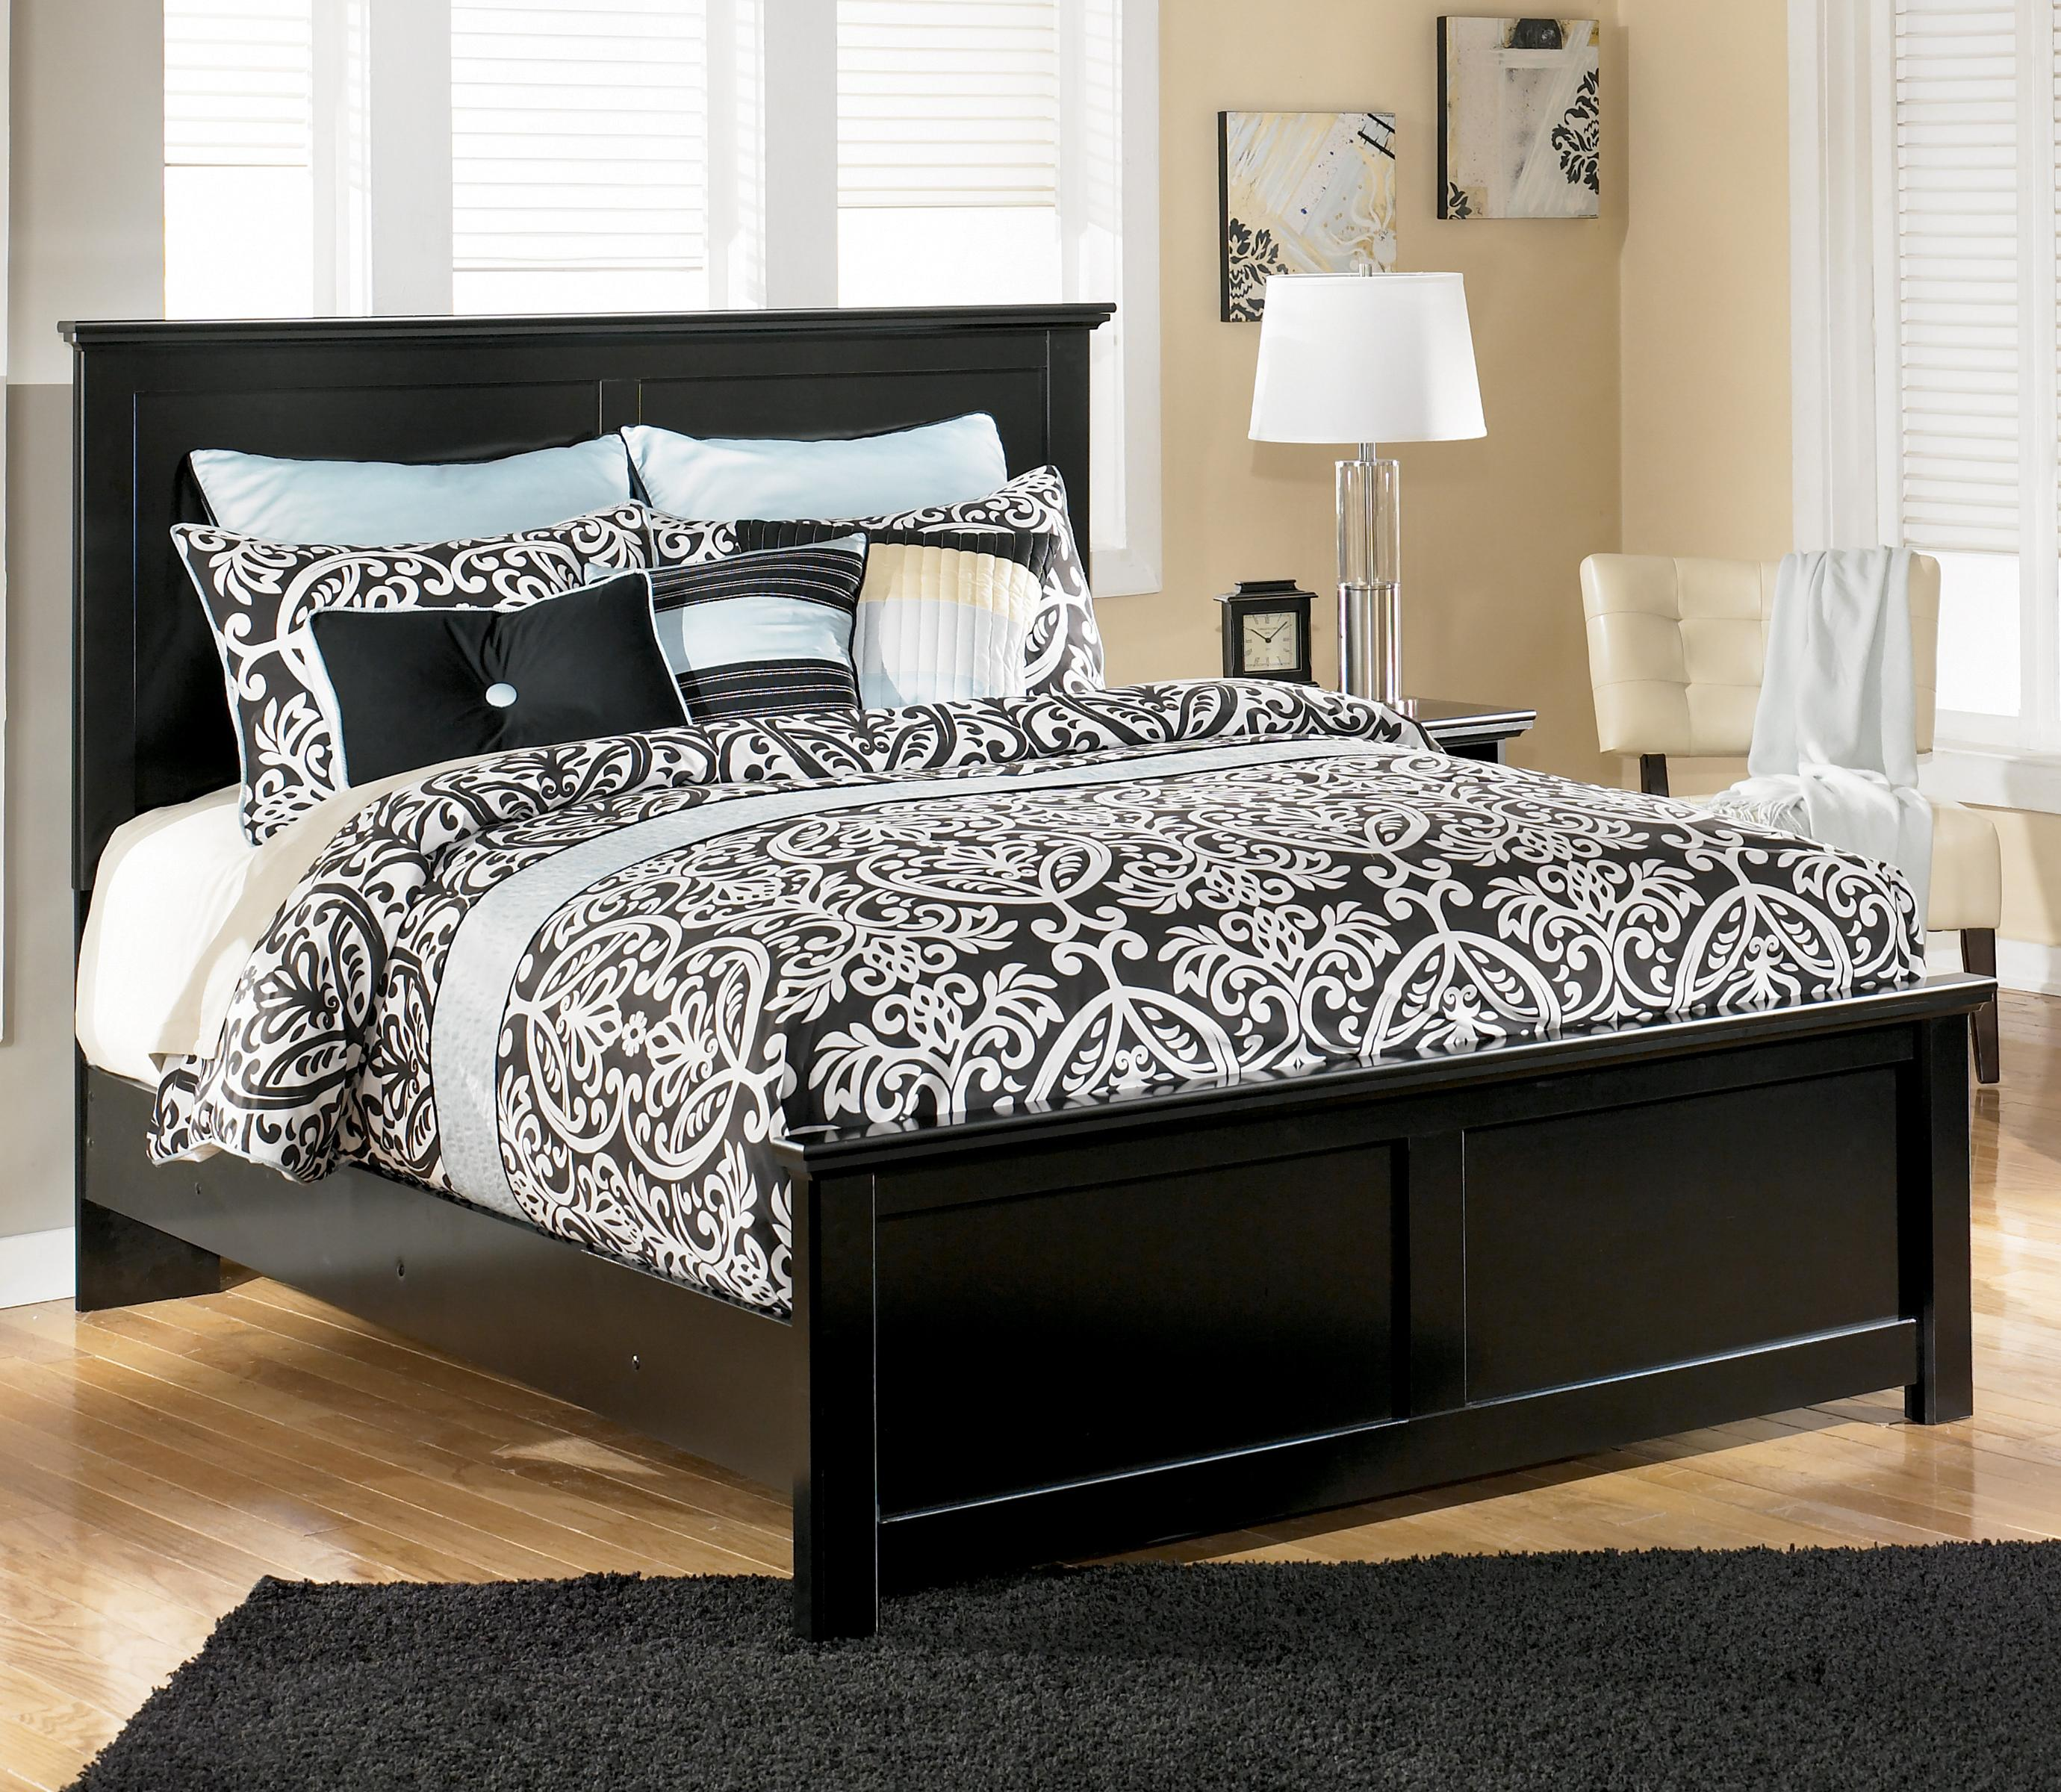 Signature Design by Ashley Maribel Queen Panel Bed - Item Number: B138-57+54